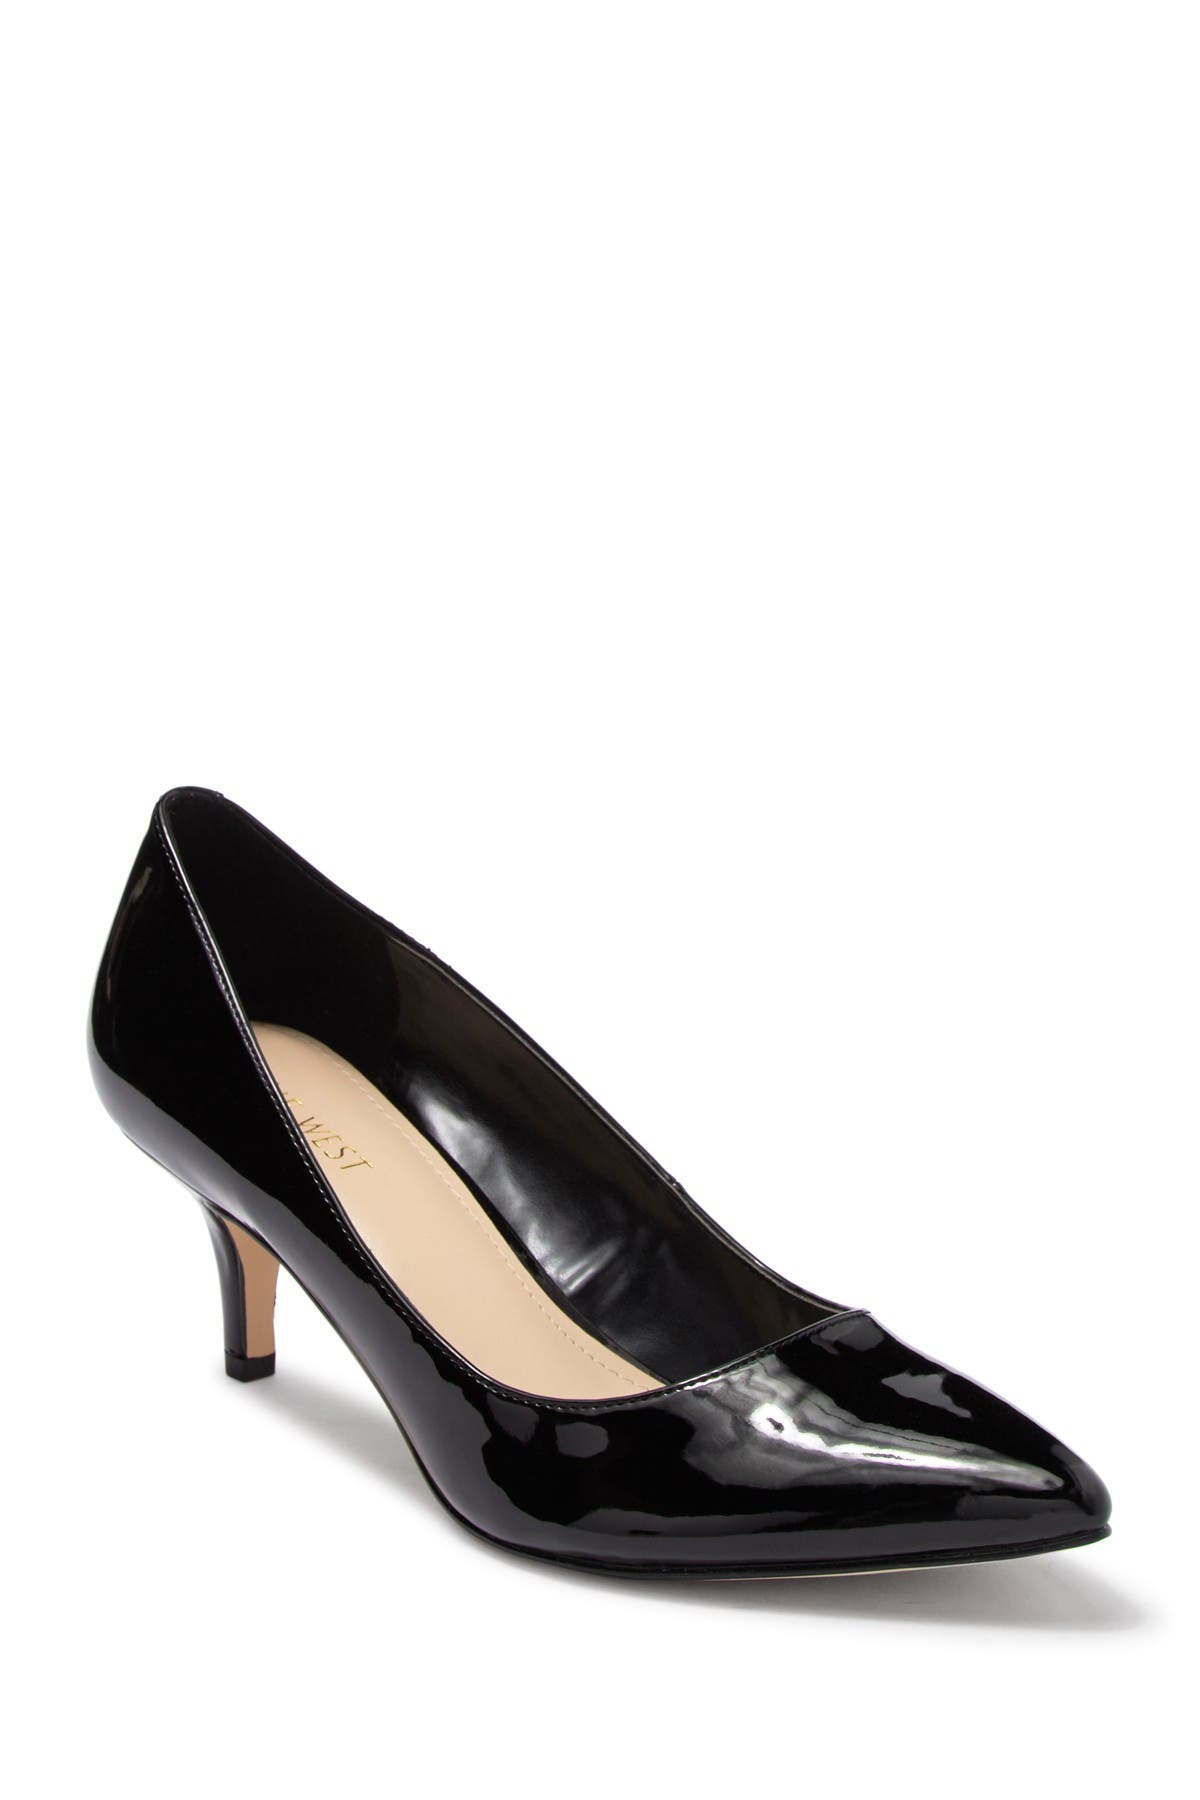 Image of Nine West Low Key Pointed Toe Pump